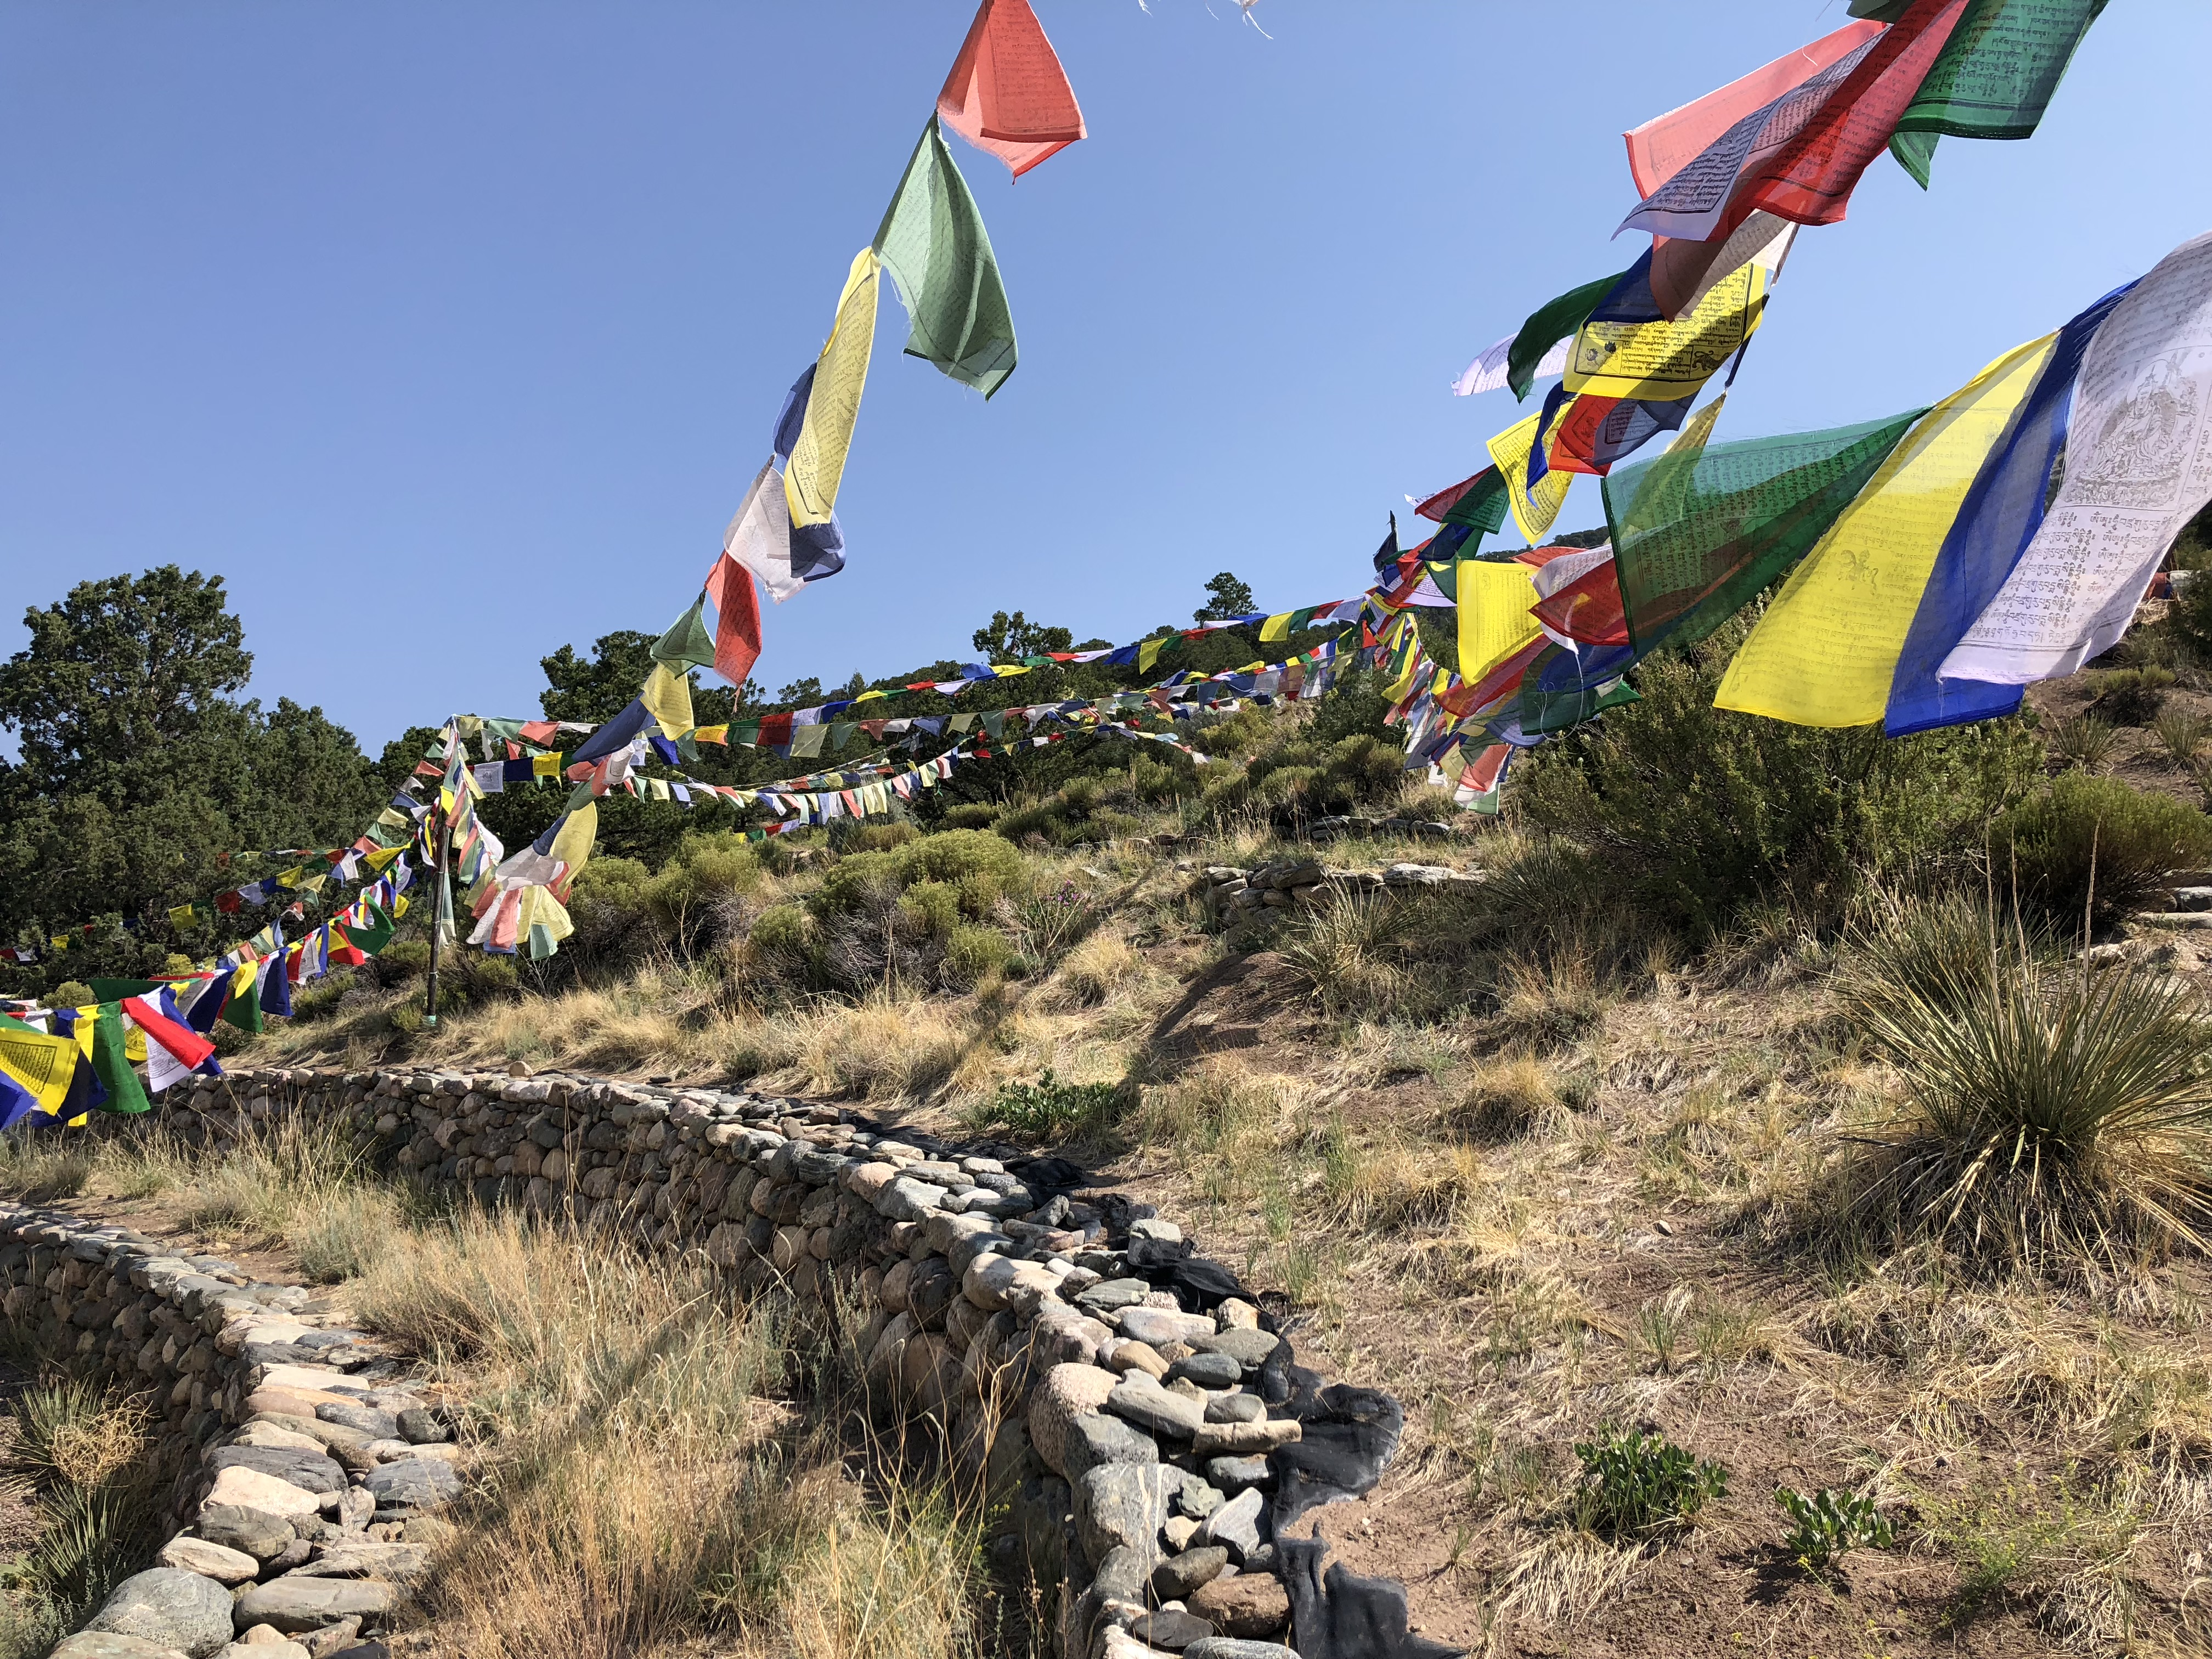 Prayer Flags around the Stupa